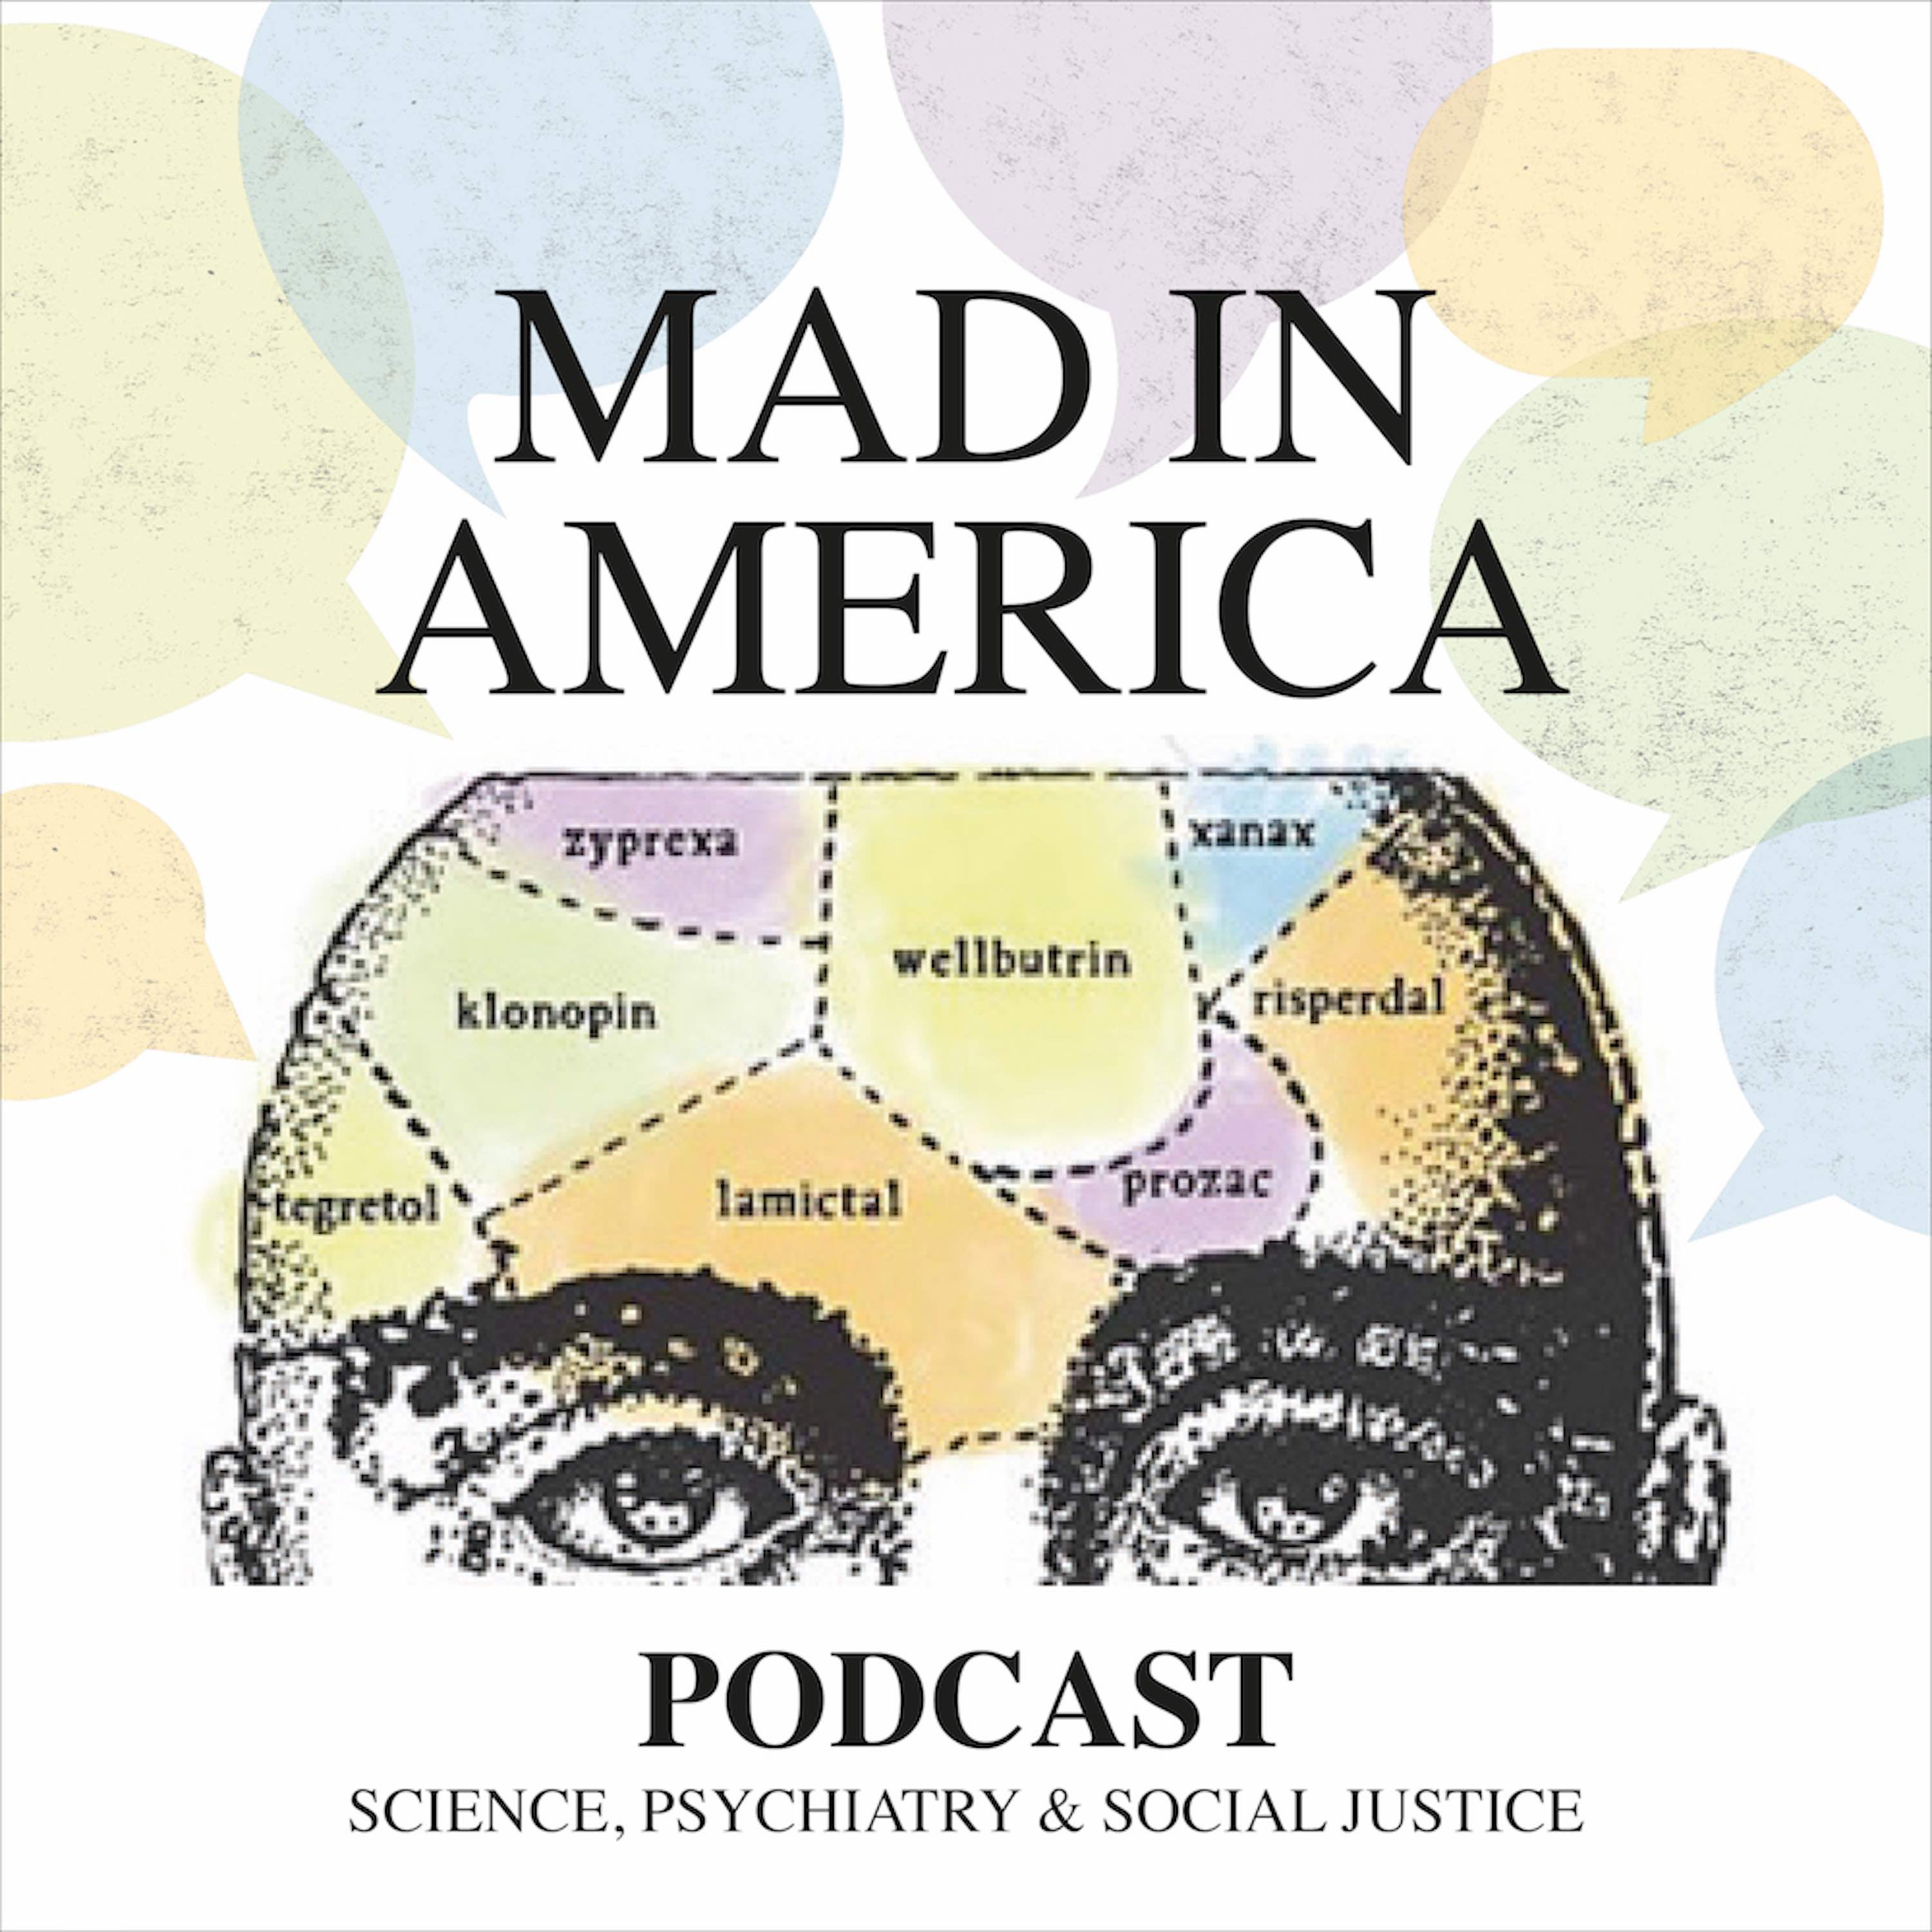 Mad in America: Rethinking Mental Health - Lee Coleman - Breaking Out of the Circle - Creating a Non-violent Revolution